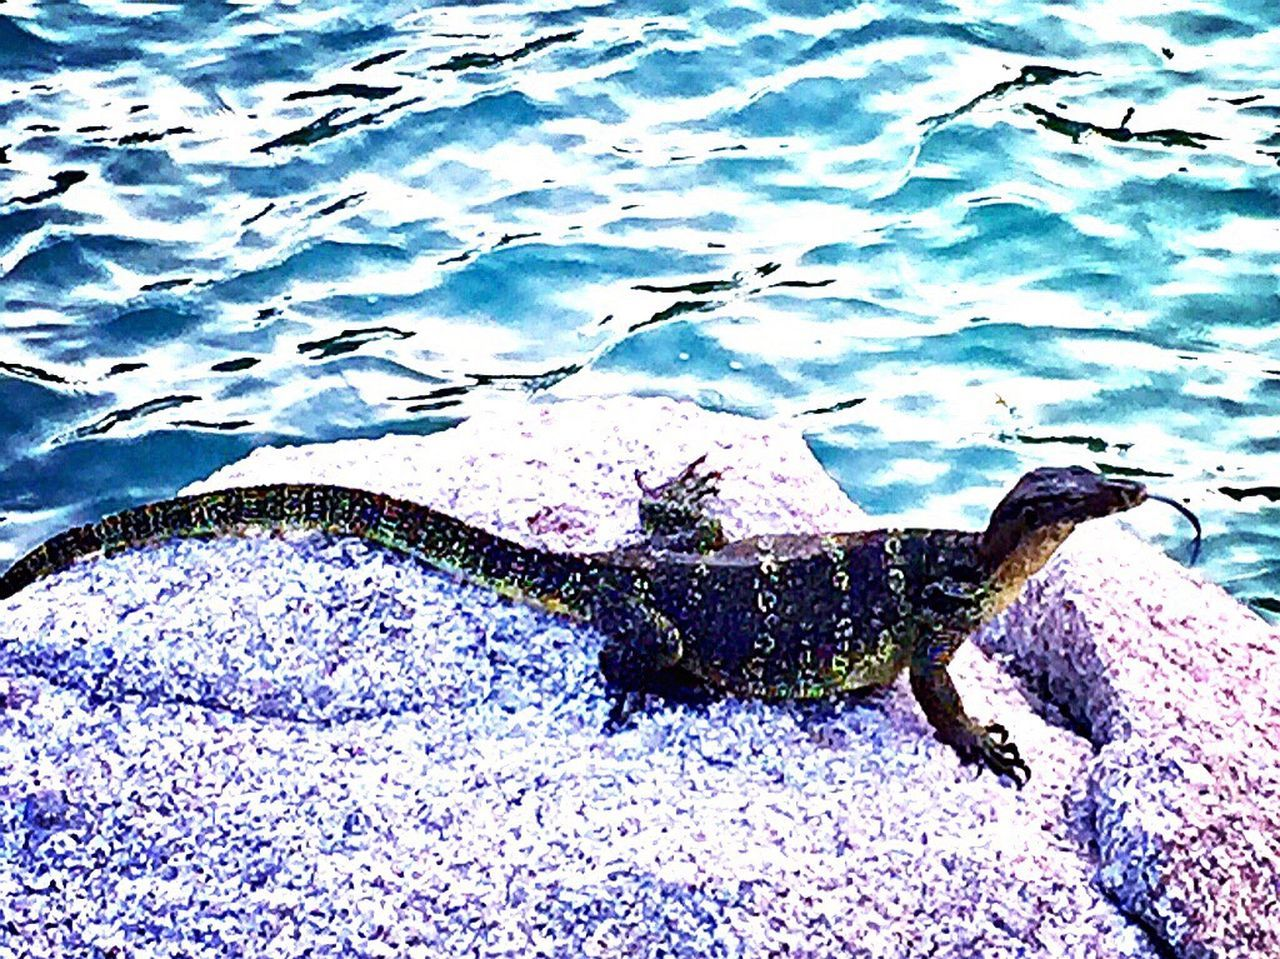 Water Animal Themes Real People One Person Nature Outdoors Day Animals In The Wild Beach Photography StillLifePhotography Capture The Moment Pankor Laut Tropical Paradise IPhoneography Beauty In Nature Beauty In Nature People